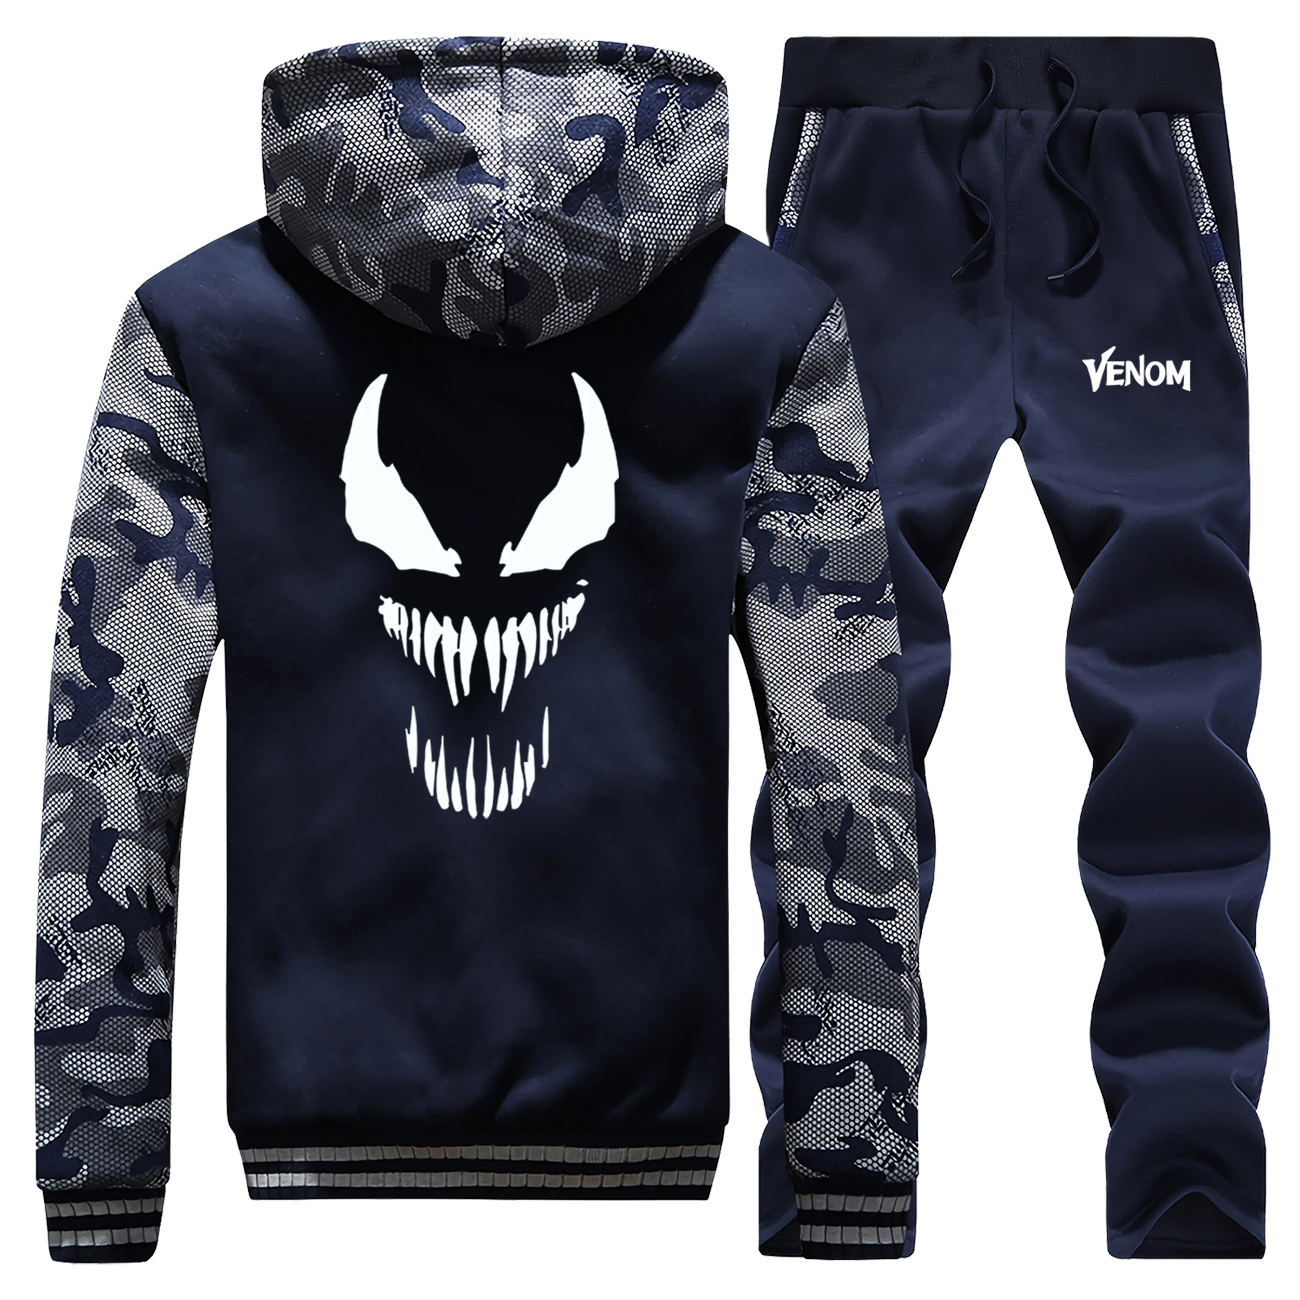 Venom Mens Jacket+Pants 2 Piece Sets Winter Man Sweatshirts Warm Suit Mens Fashion Tracksuit Hip Hop Men Hoodies Trousers Suit